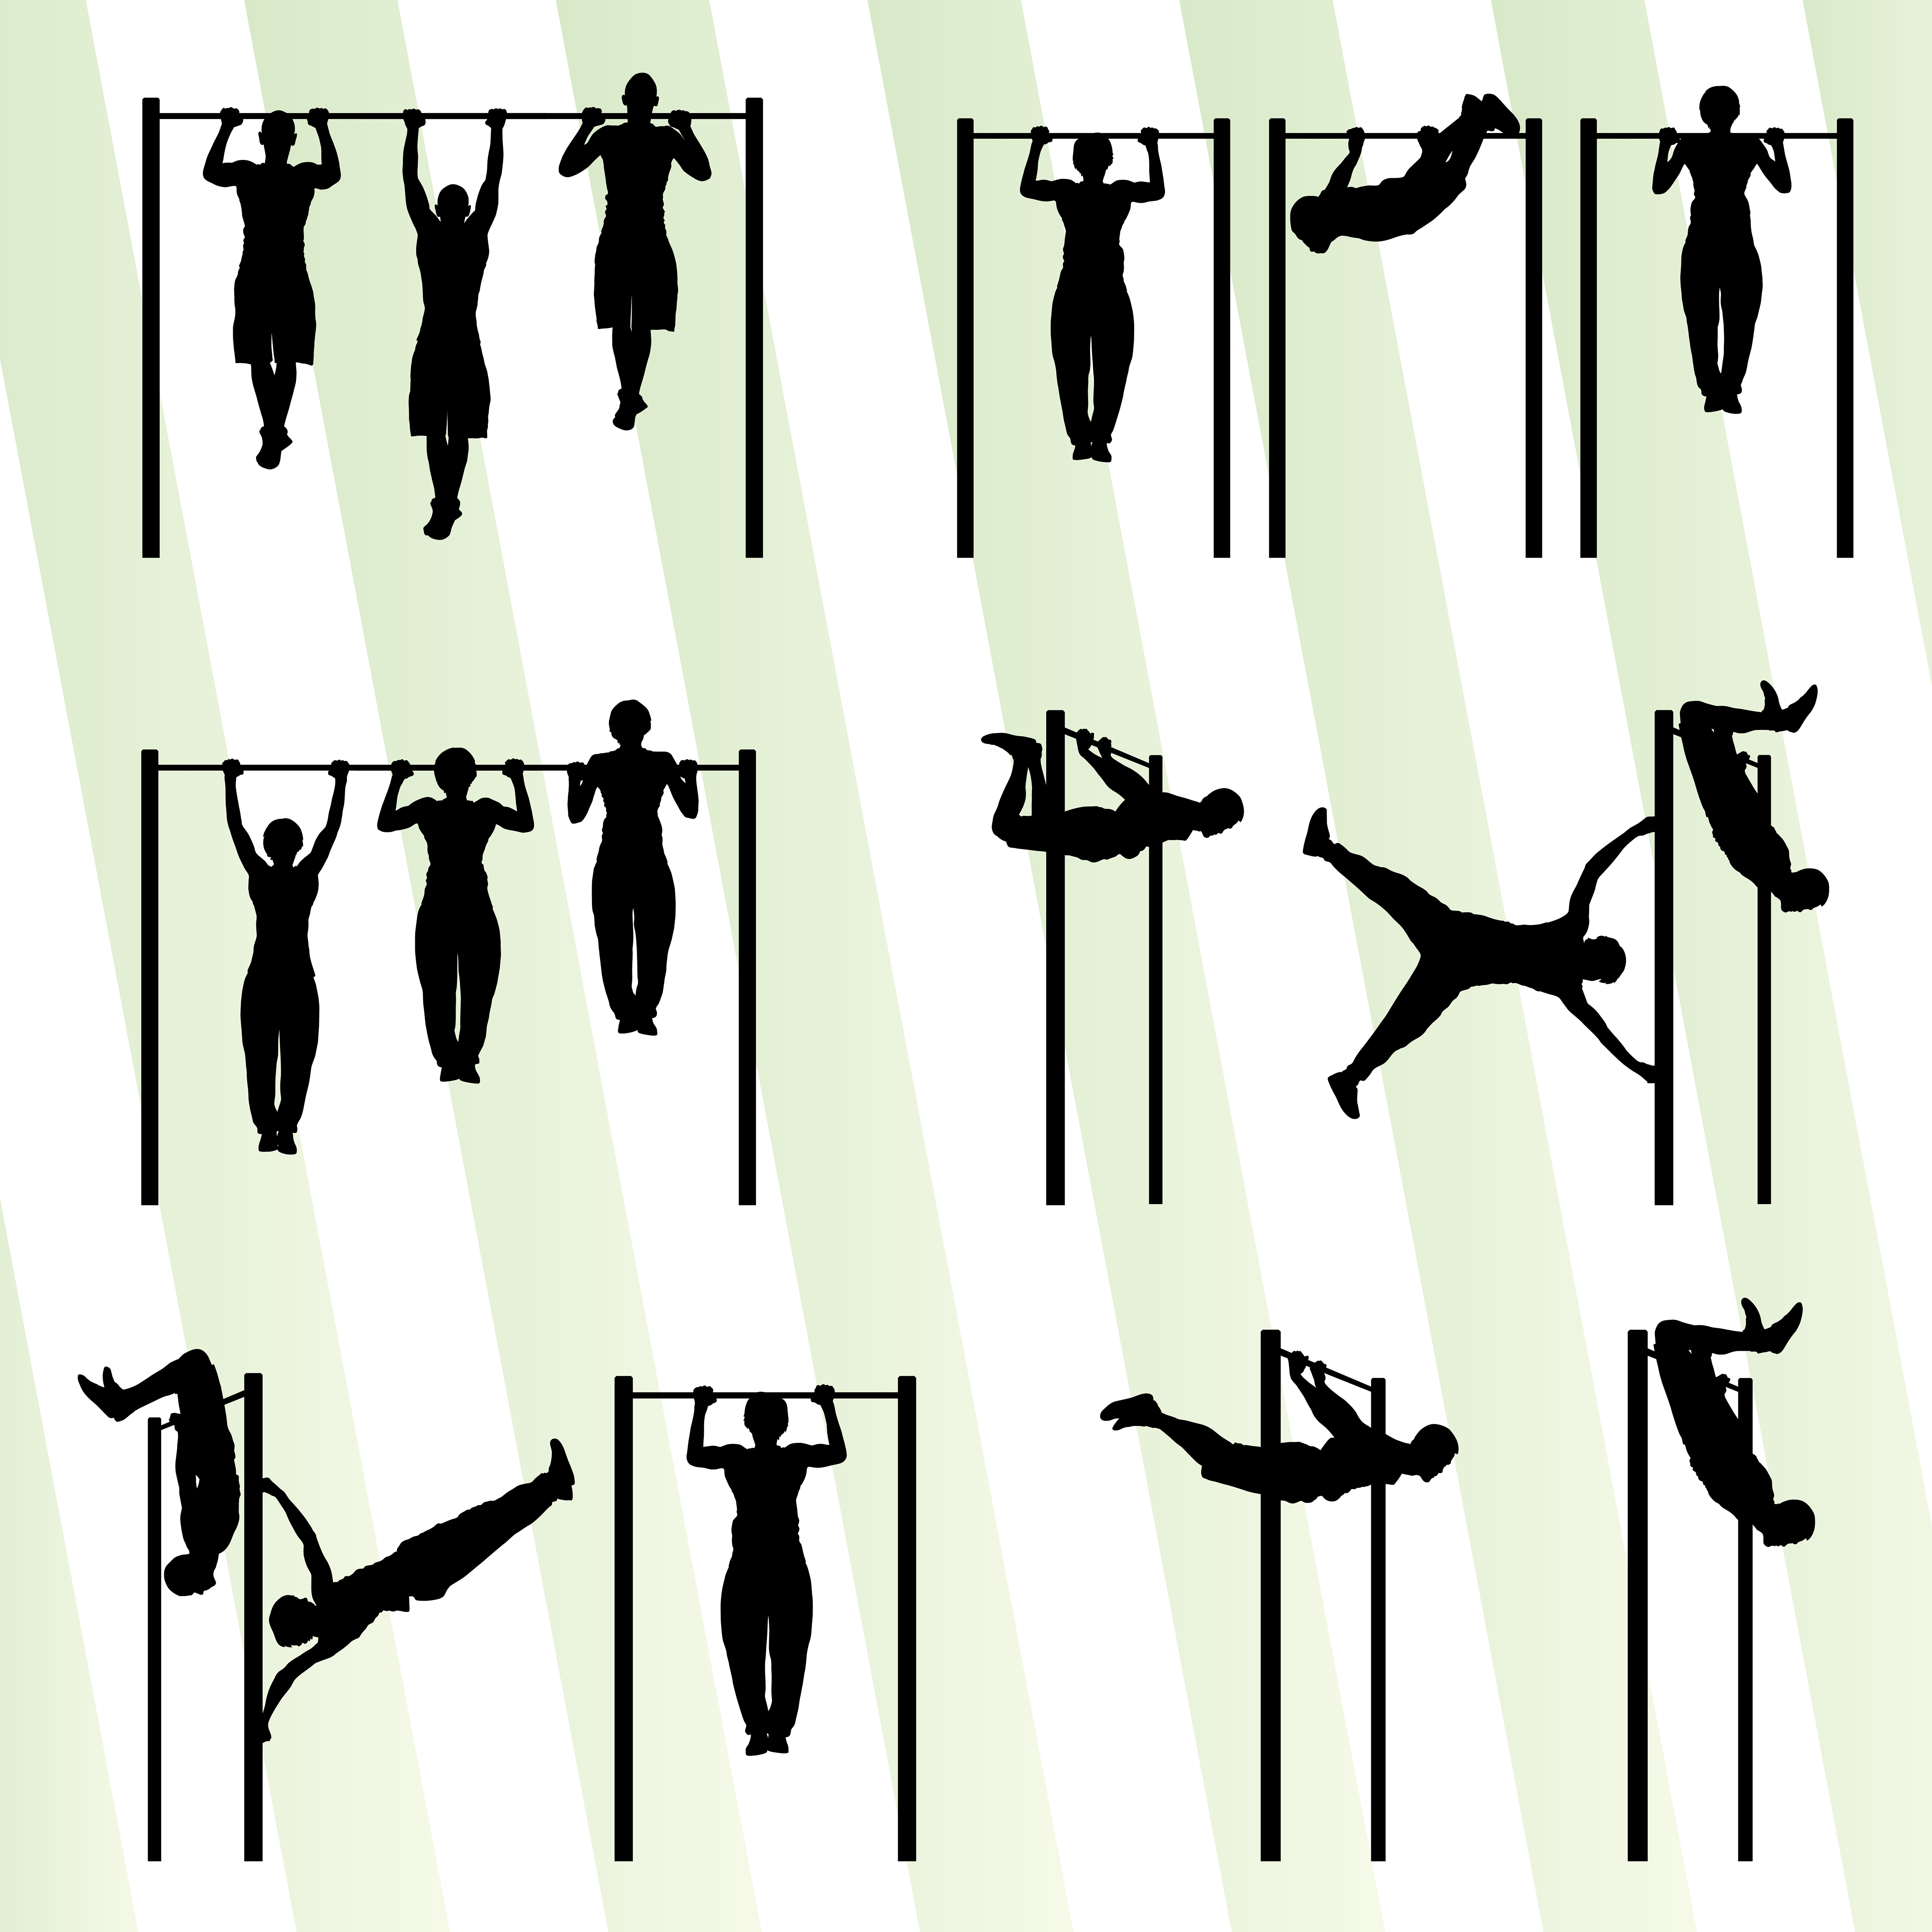 There are some pull-ups which you can try also!